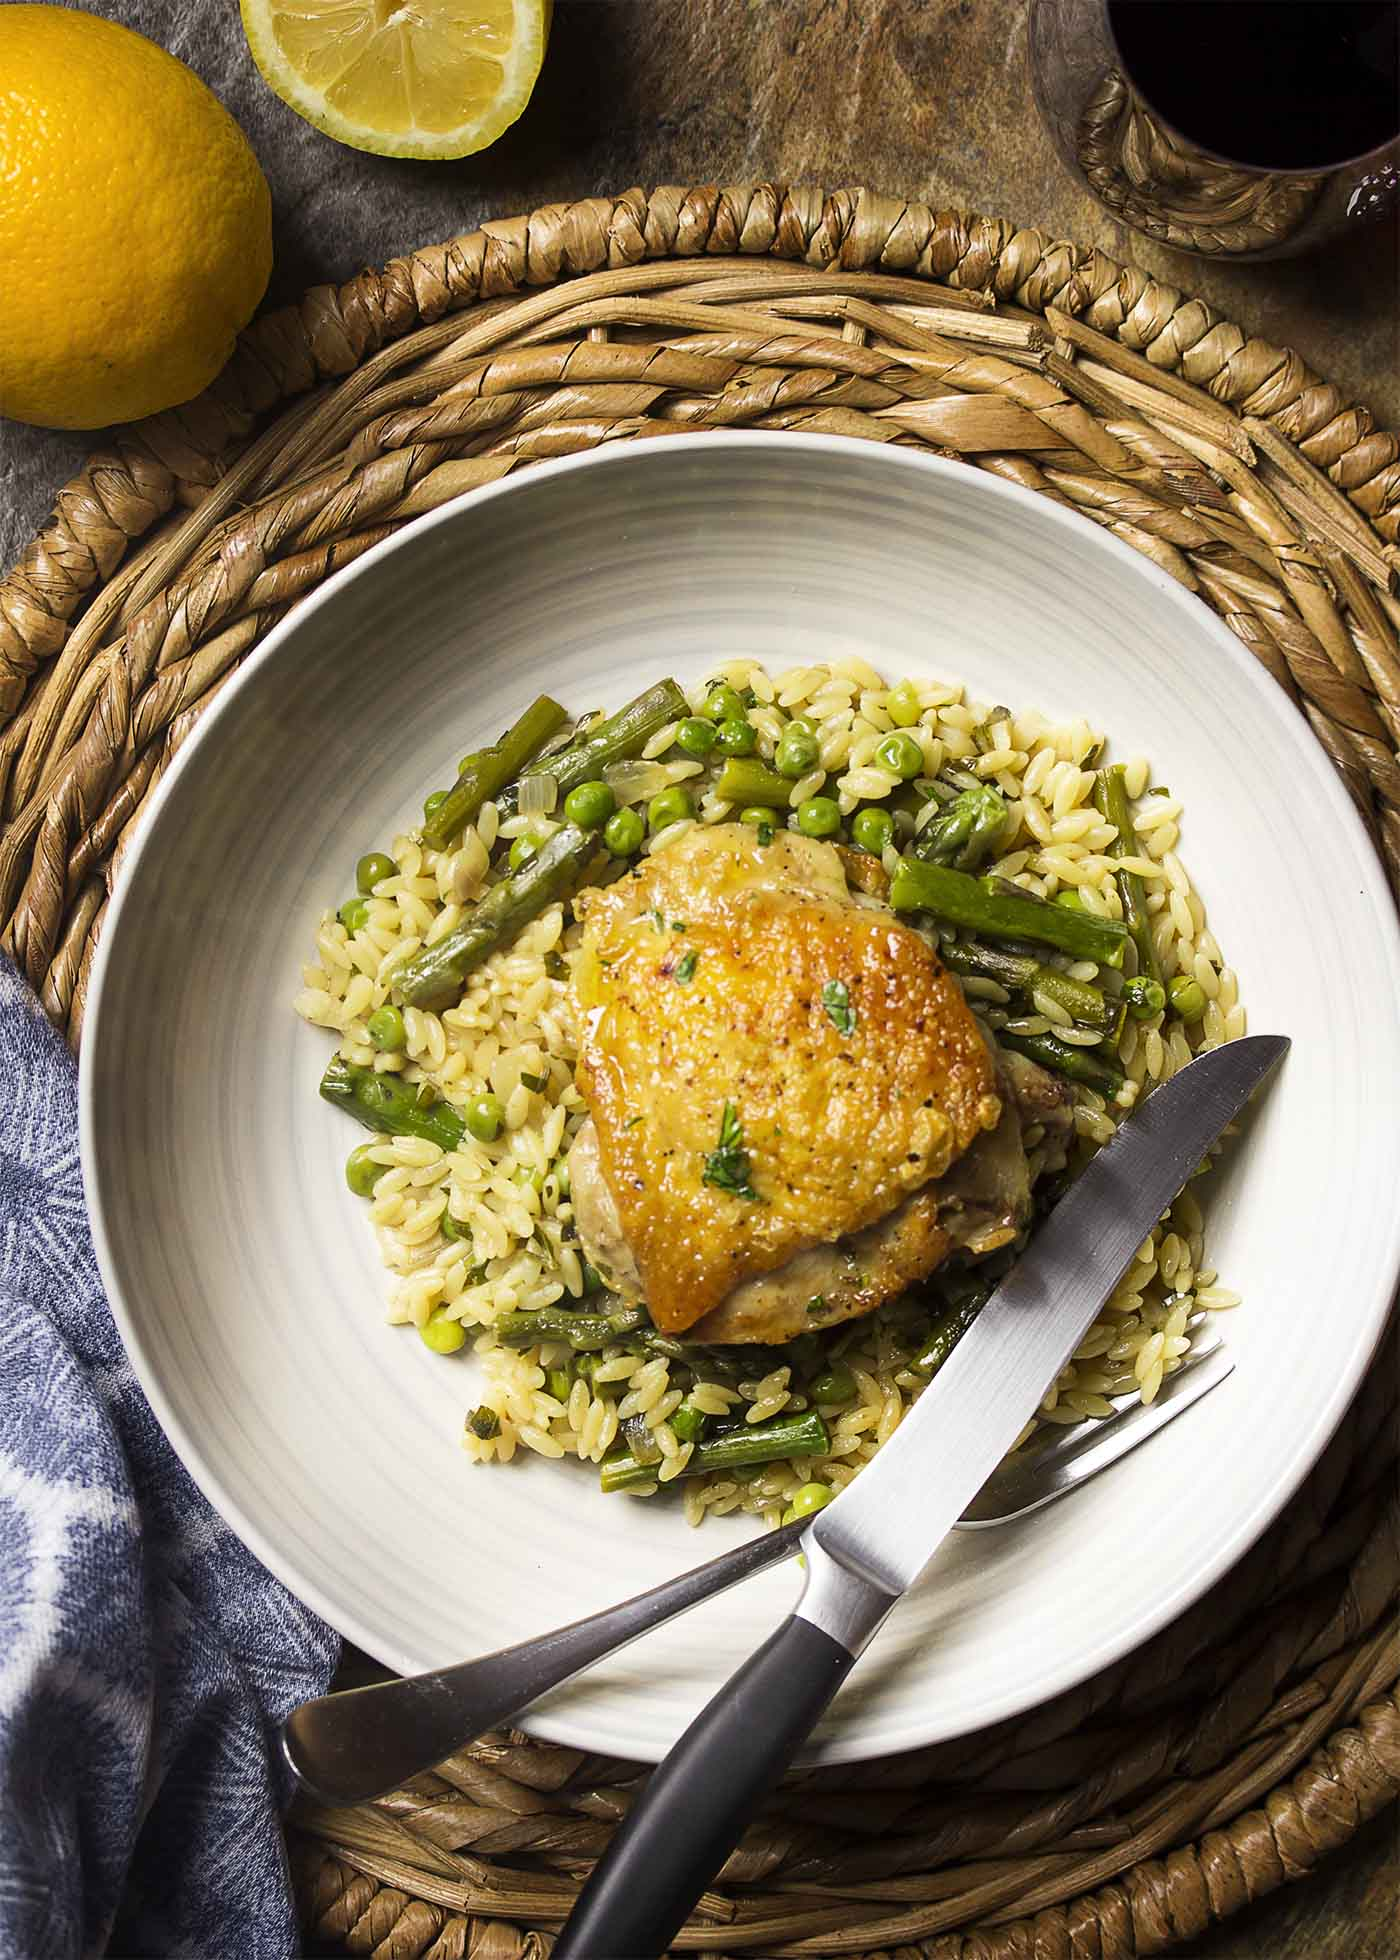 Top view of a bowl filled with orzo and vegetables topped with a golden brown chicken thigh.